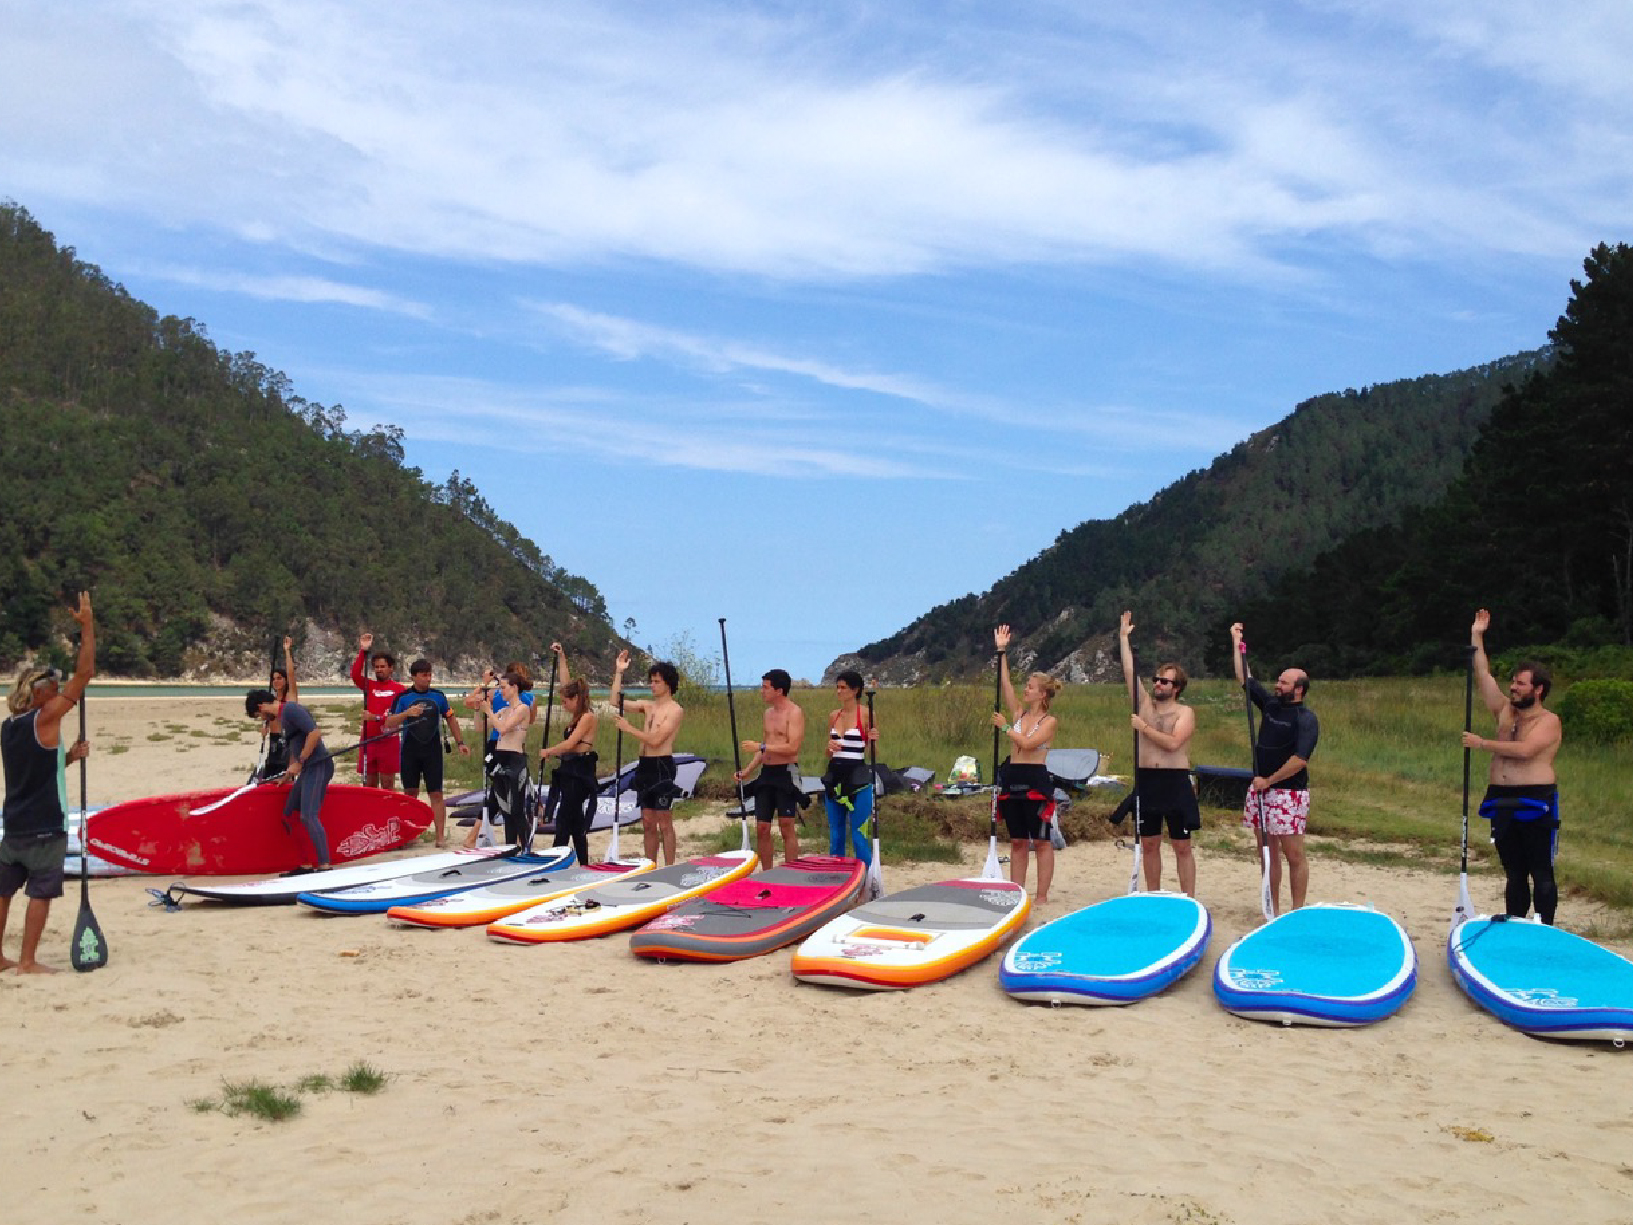 sup, sup river, sup dreamers, stand up paddle, starboard, sps, travesías, clases, escuela paddle surf cantabria, asturias, familias, grupos, cumpleaños, despedida de soltero, team building, Asturias, paddle surf